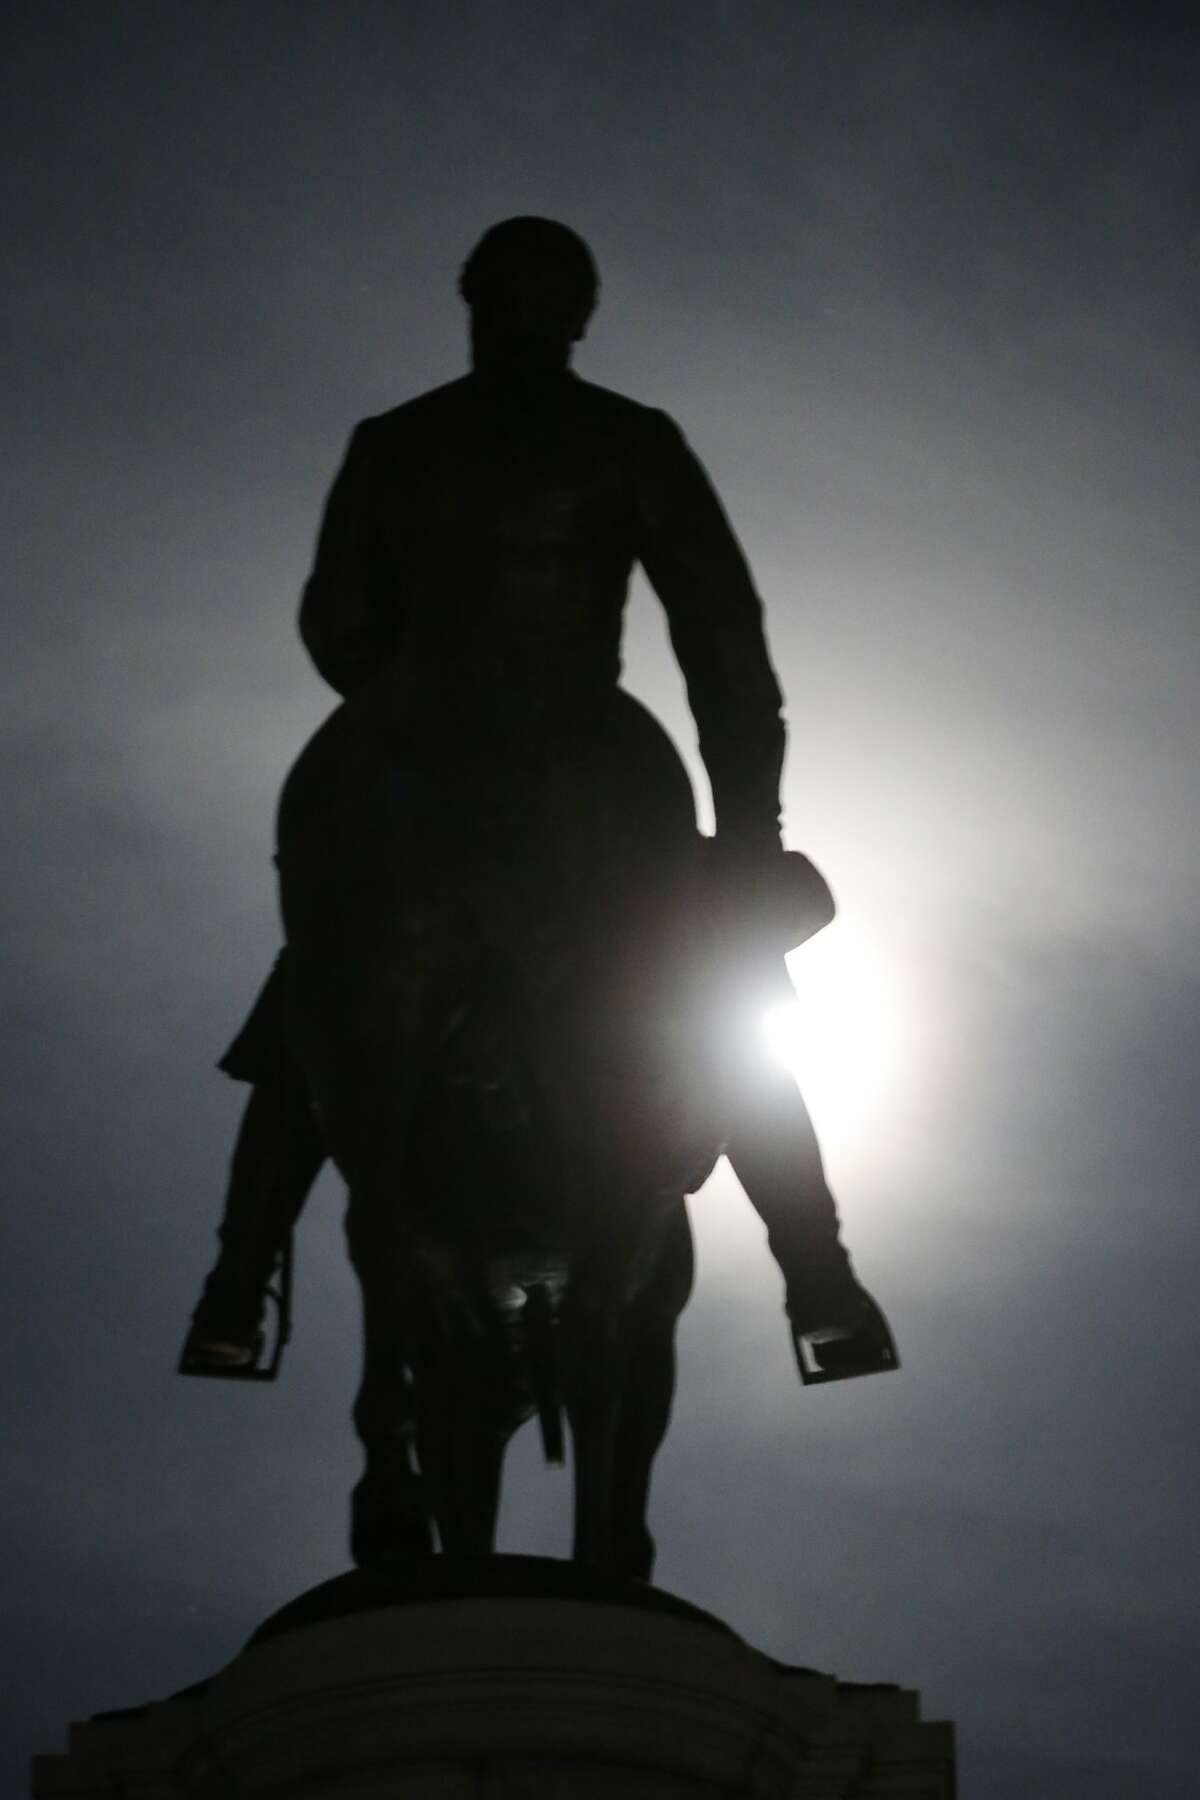 FILE This Friday June 5, 2020 file photo shows the Moon as it illuminates the statue of Confederate General Robert E. Lee on Monument Avenue in Richmond, Va. Virginia Gov. Ralph Northam has ordered the removal of the statue. (AP Photo/Steve Helber)